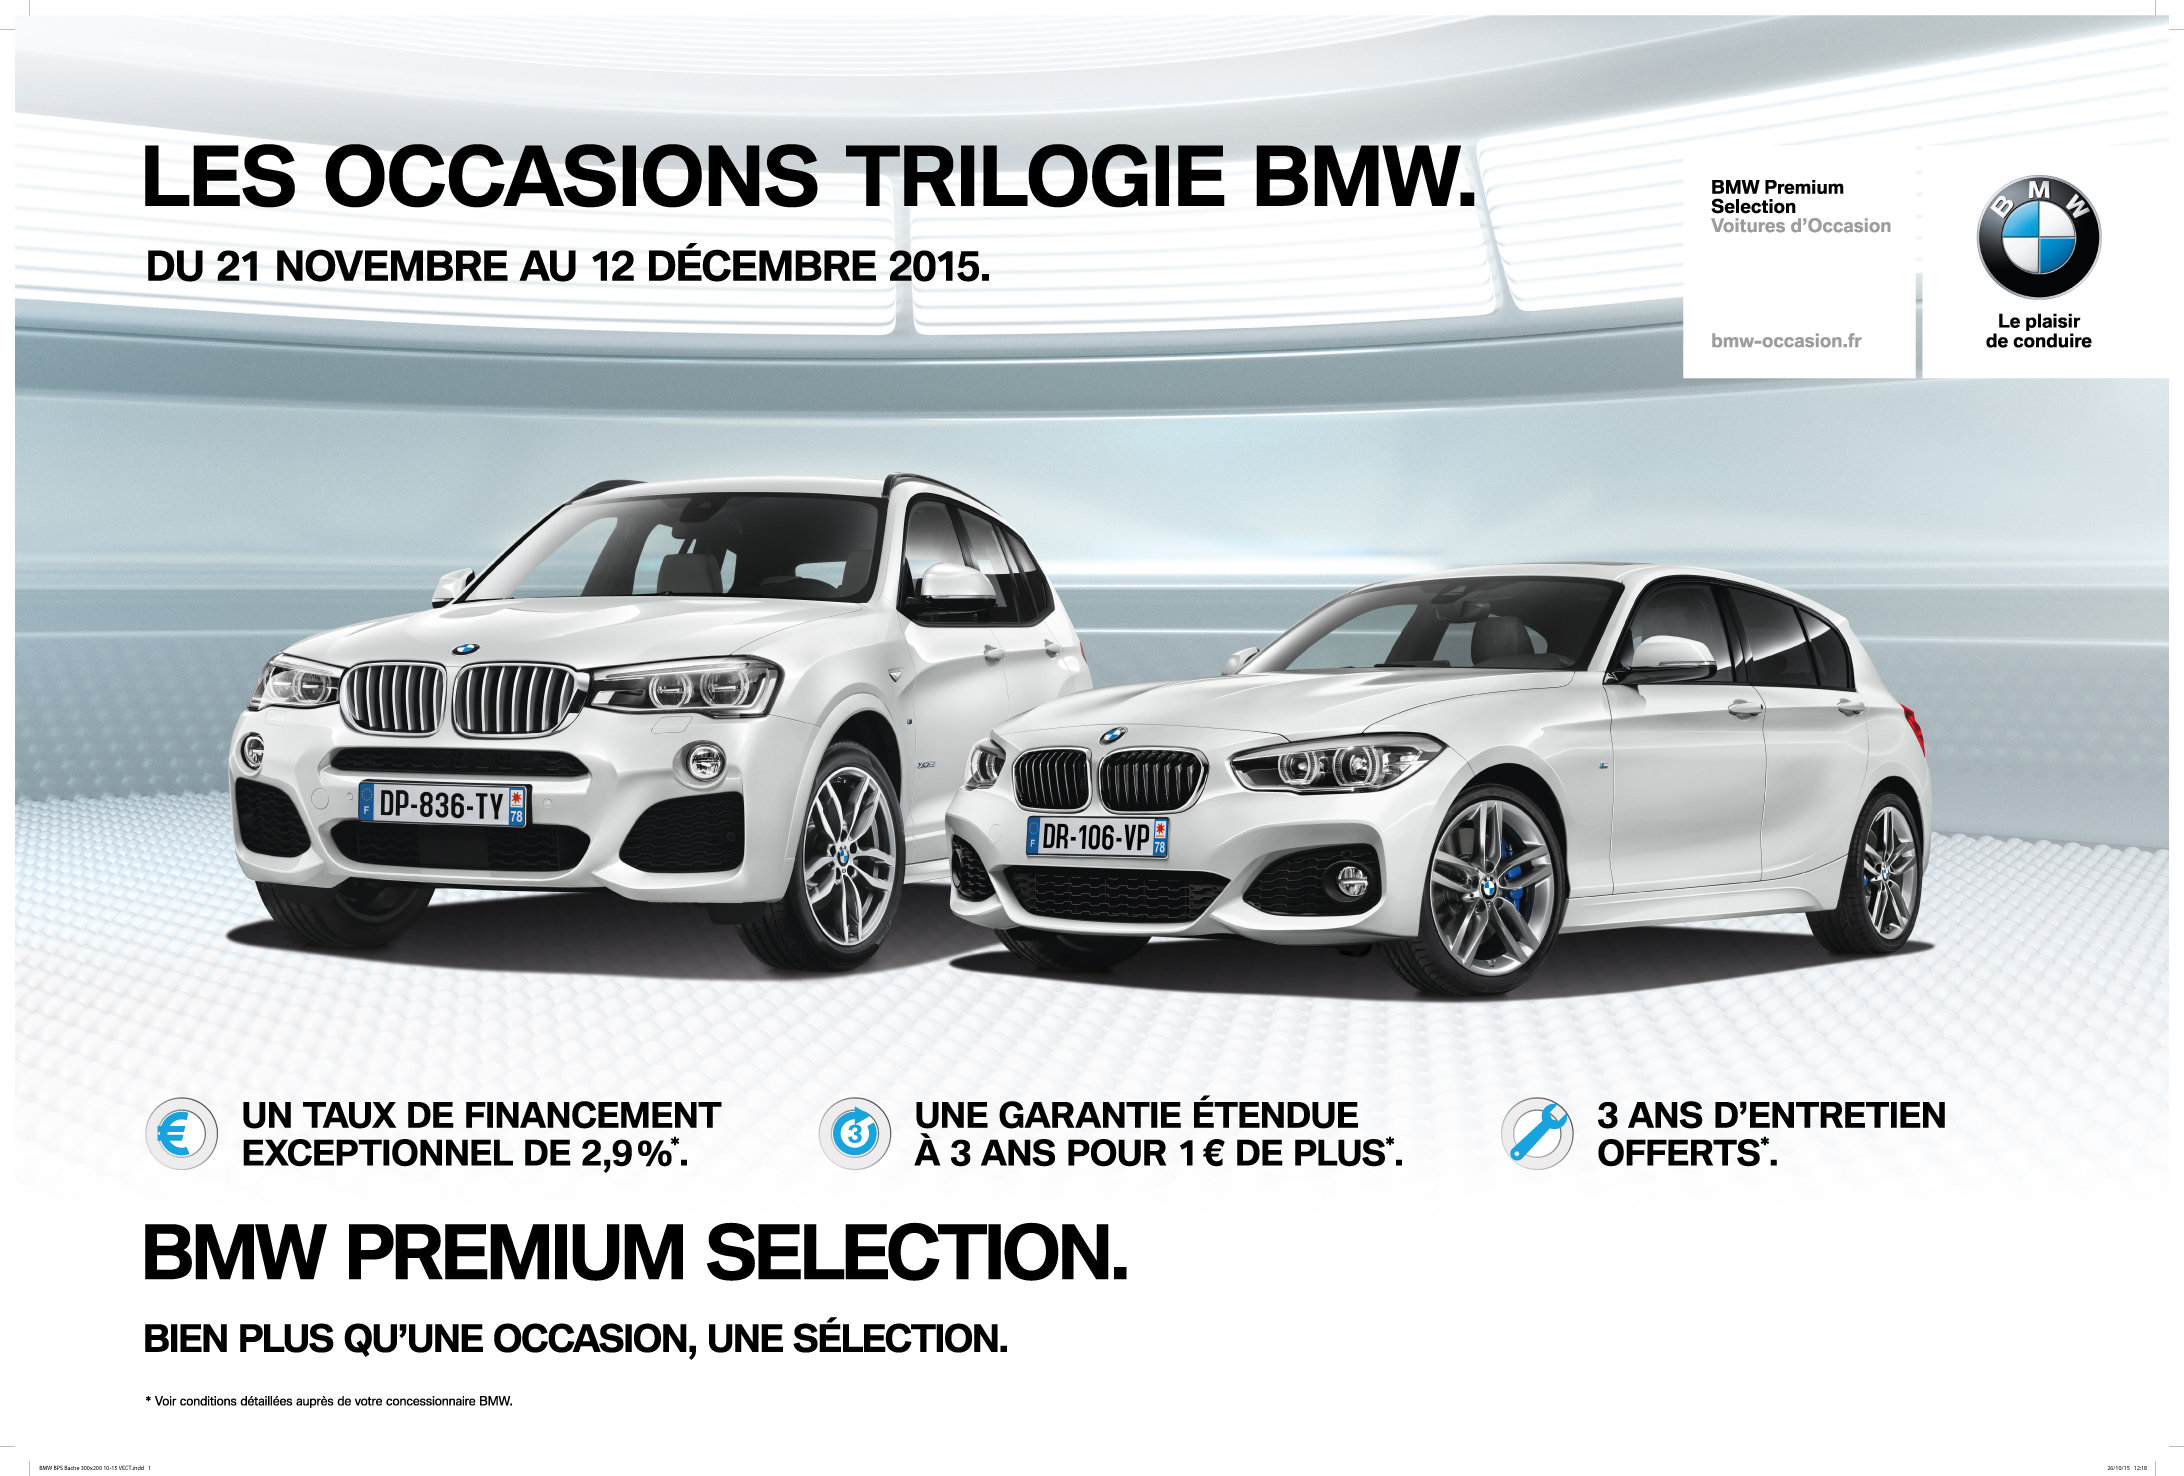 Http www bmw fr fr topics nos offres occasions trilogie html